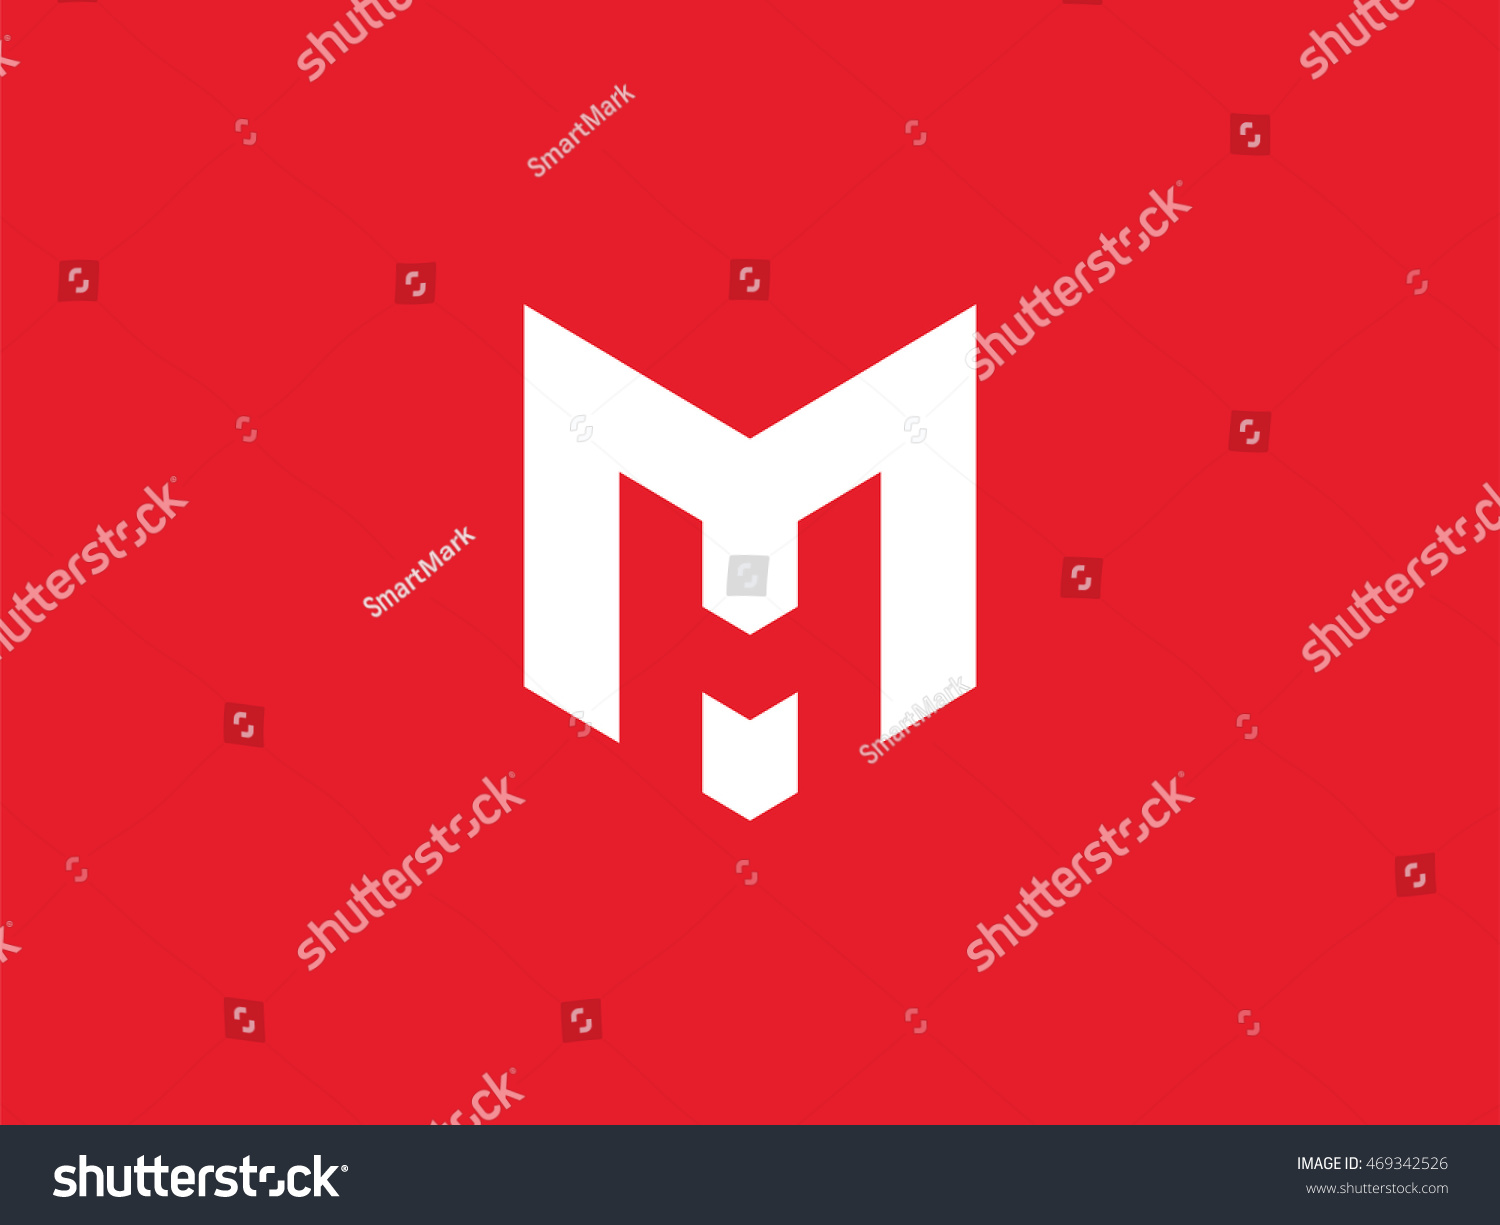 Stock Vector Mh Logo Design Smart Mark Of Letter And Modern Flat Style Graphic Element For Your Monogram